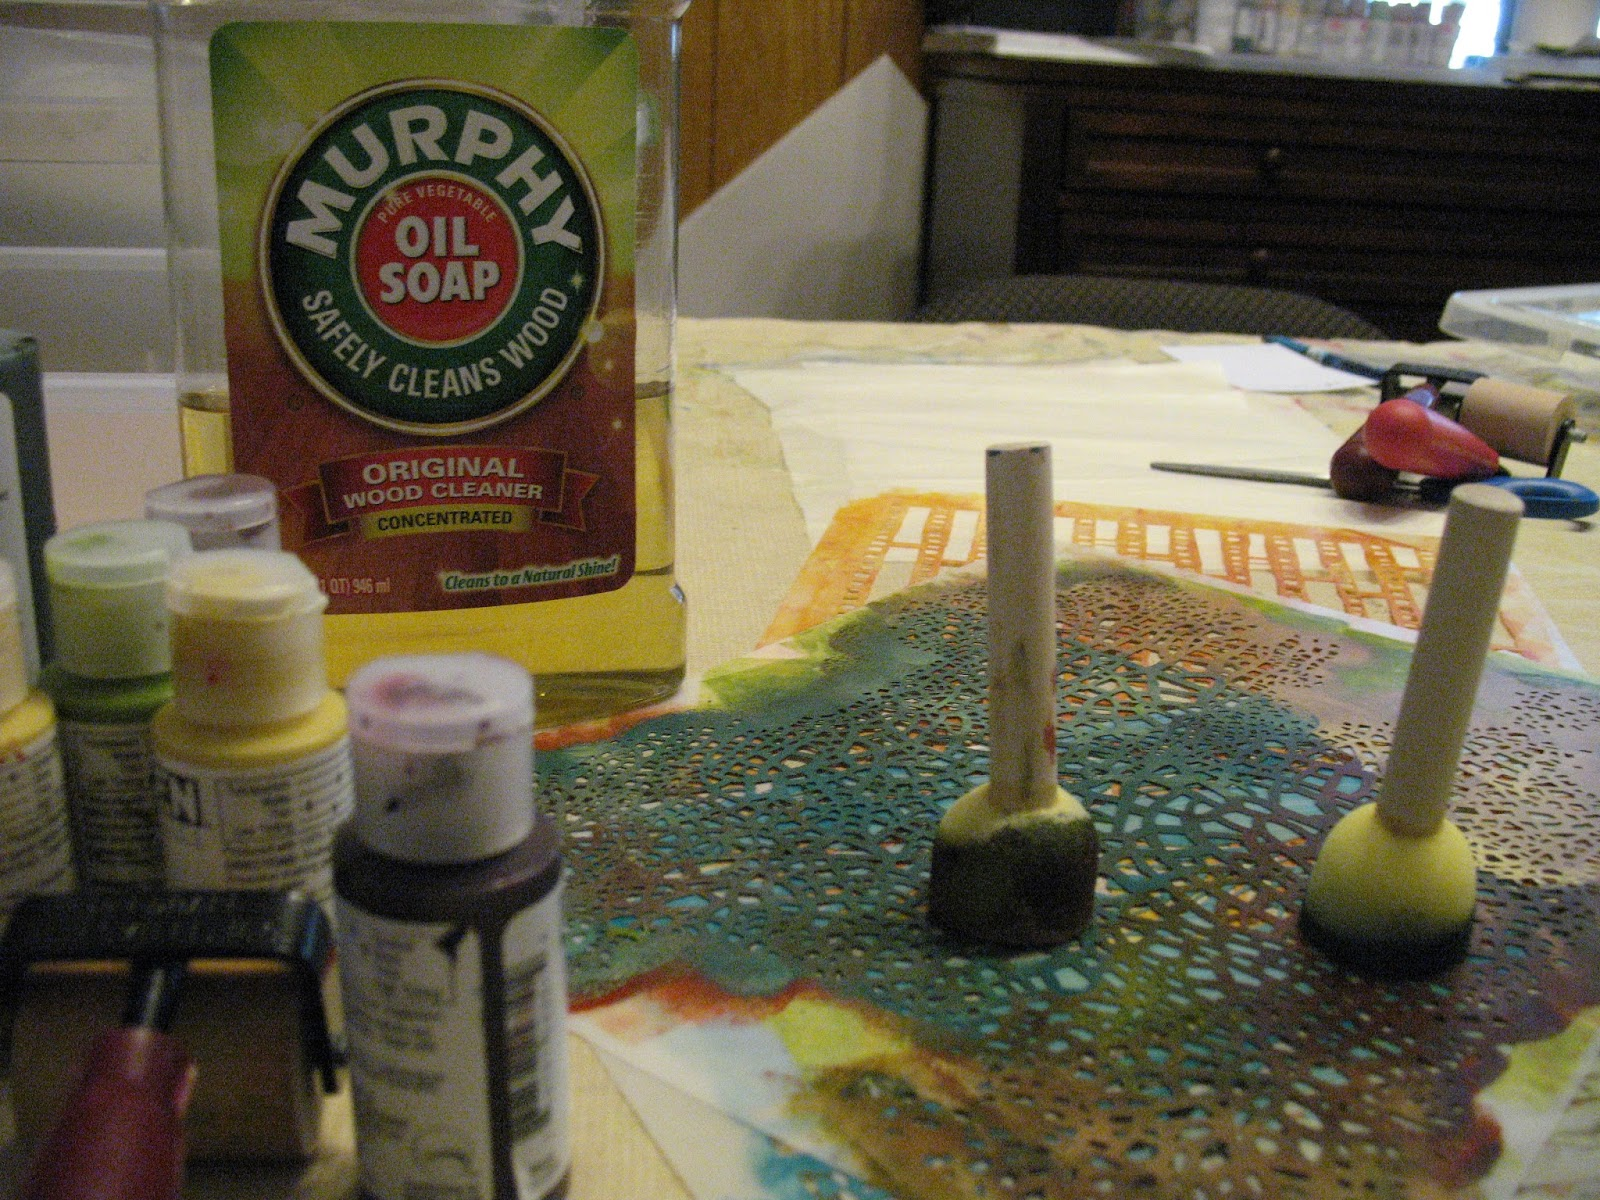 Reputable Some Hot Water Is All That It Takes To Clean Up Soap Is Pure Vegetable I Murphy Oil Use It To Clean My Paintbrushes Cleaning Stencils Aleta houzz 01 Murphys Oil Soap Uses